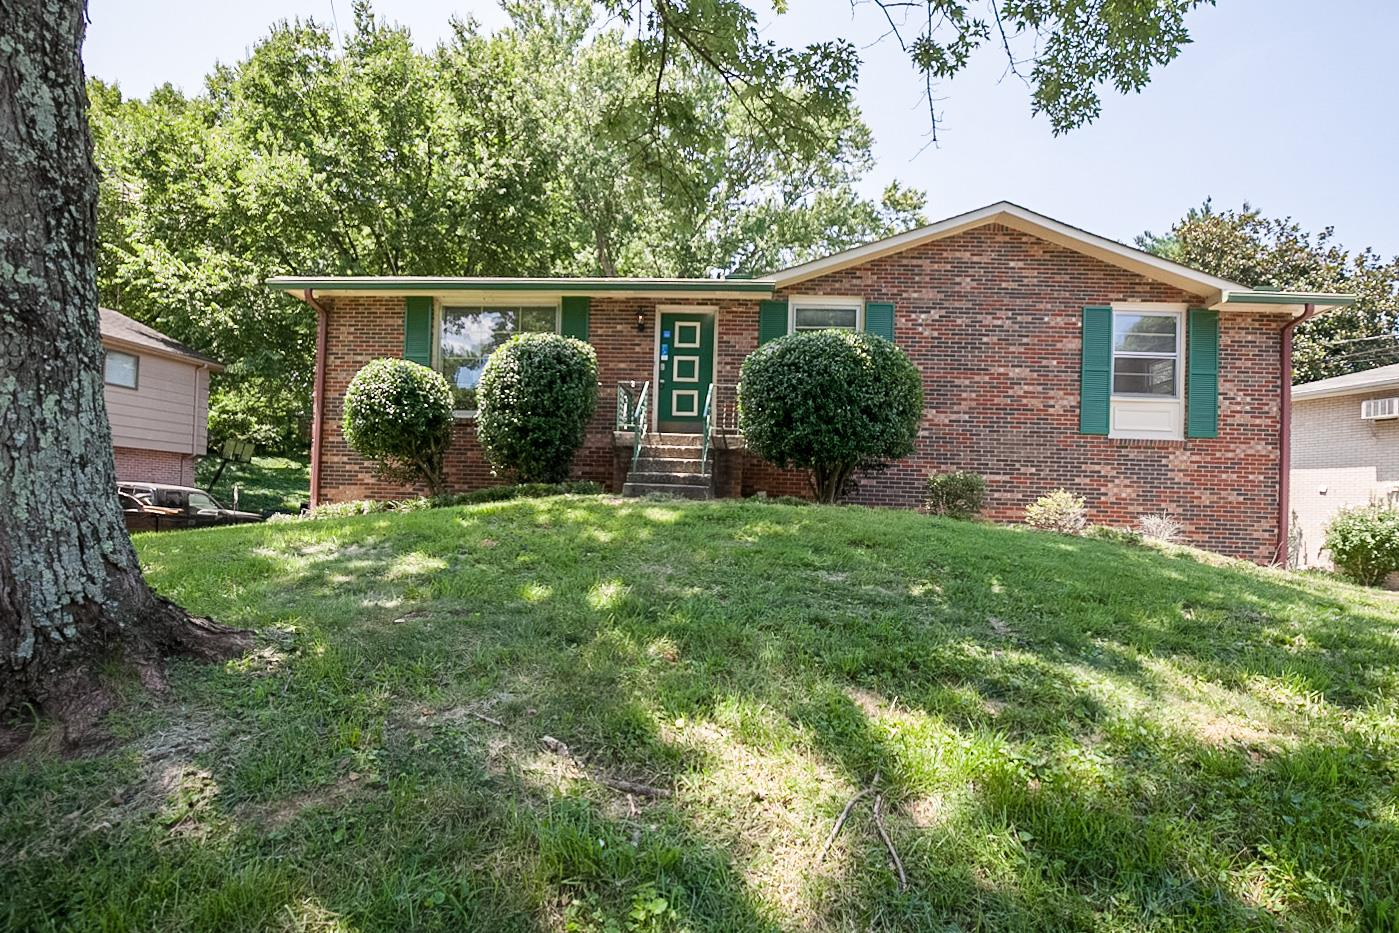 4921 Olivia Dr, Antioch, TN 37013 - Antioch, TN real estate listing